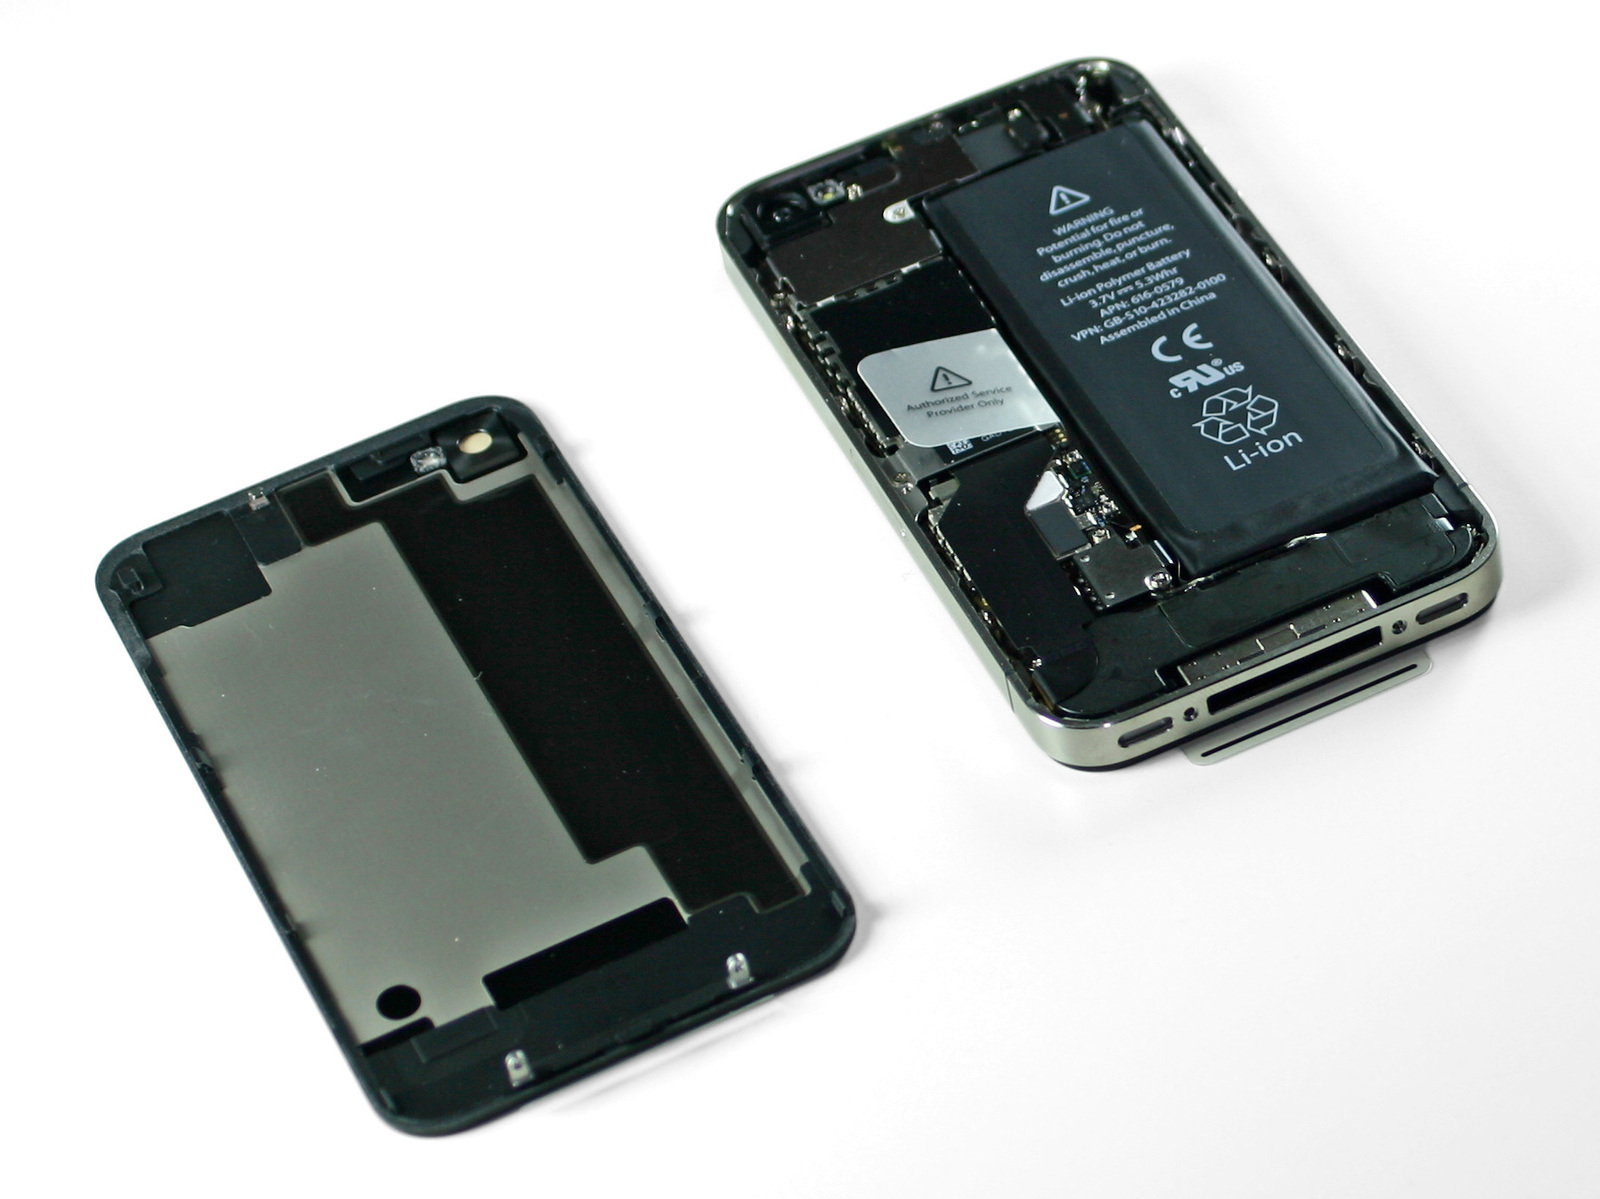 Anatomy of iphone 4s 5343311 - follow4more.info